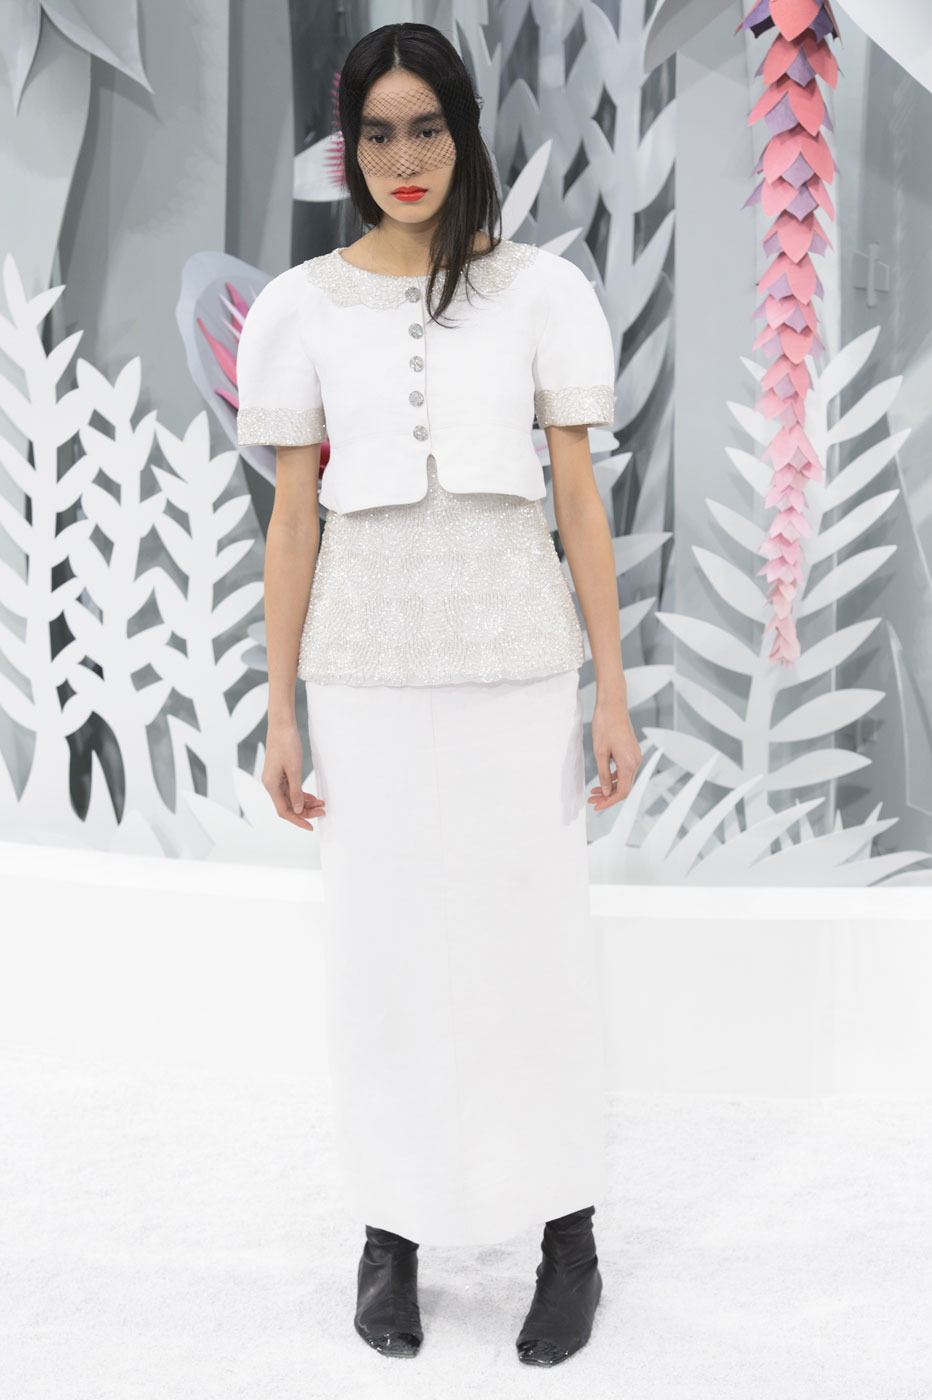 Chanel-fashion-runway-show-haute-couture-paris-spring-summer-2015-the-impression-119